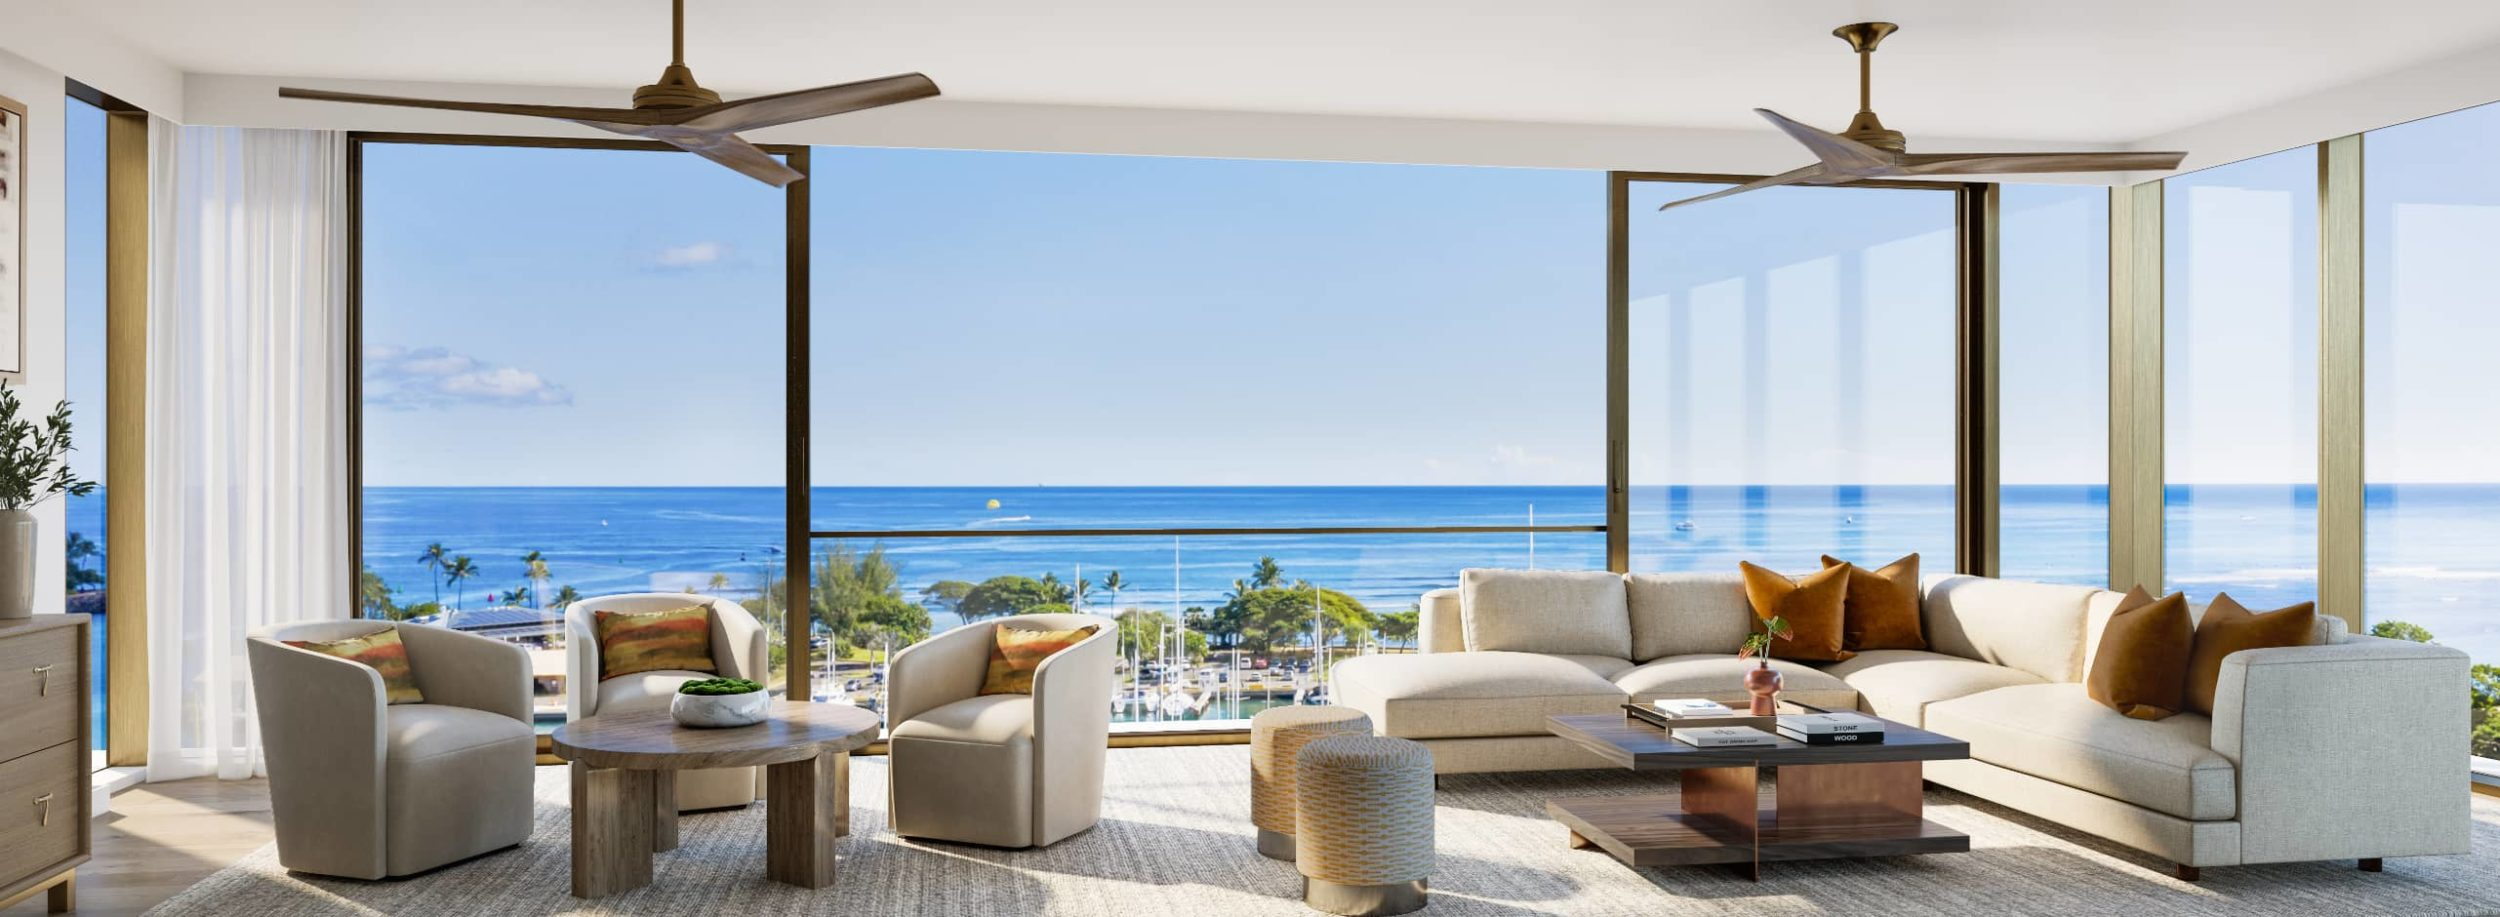 Open air living room with ocean front view at Victoria Place condominium